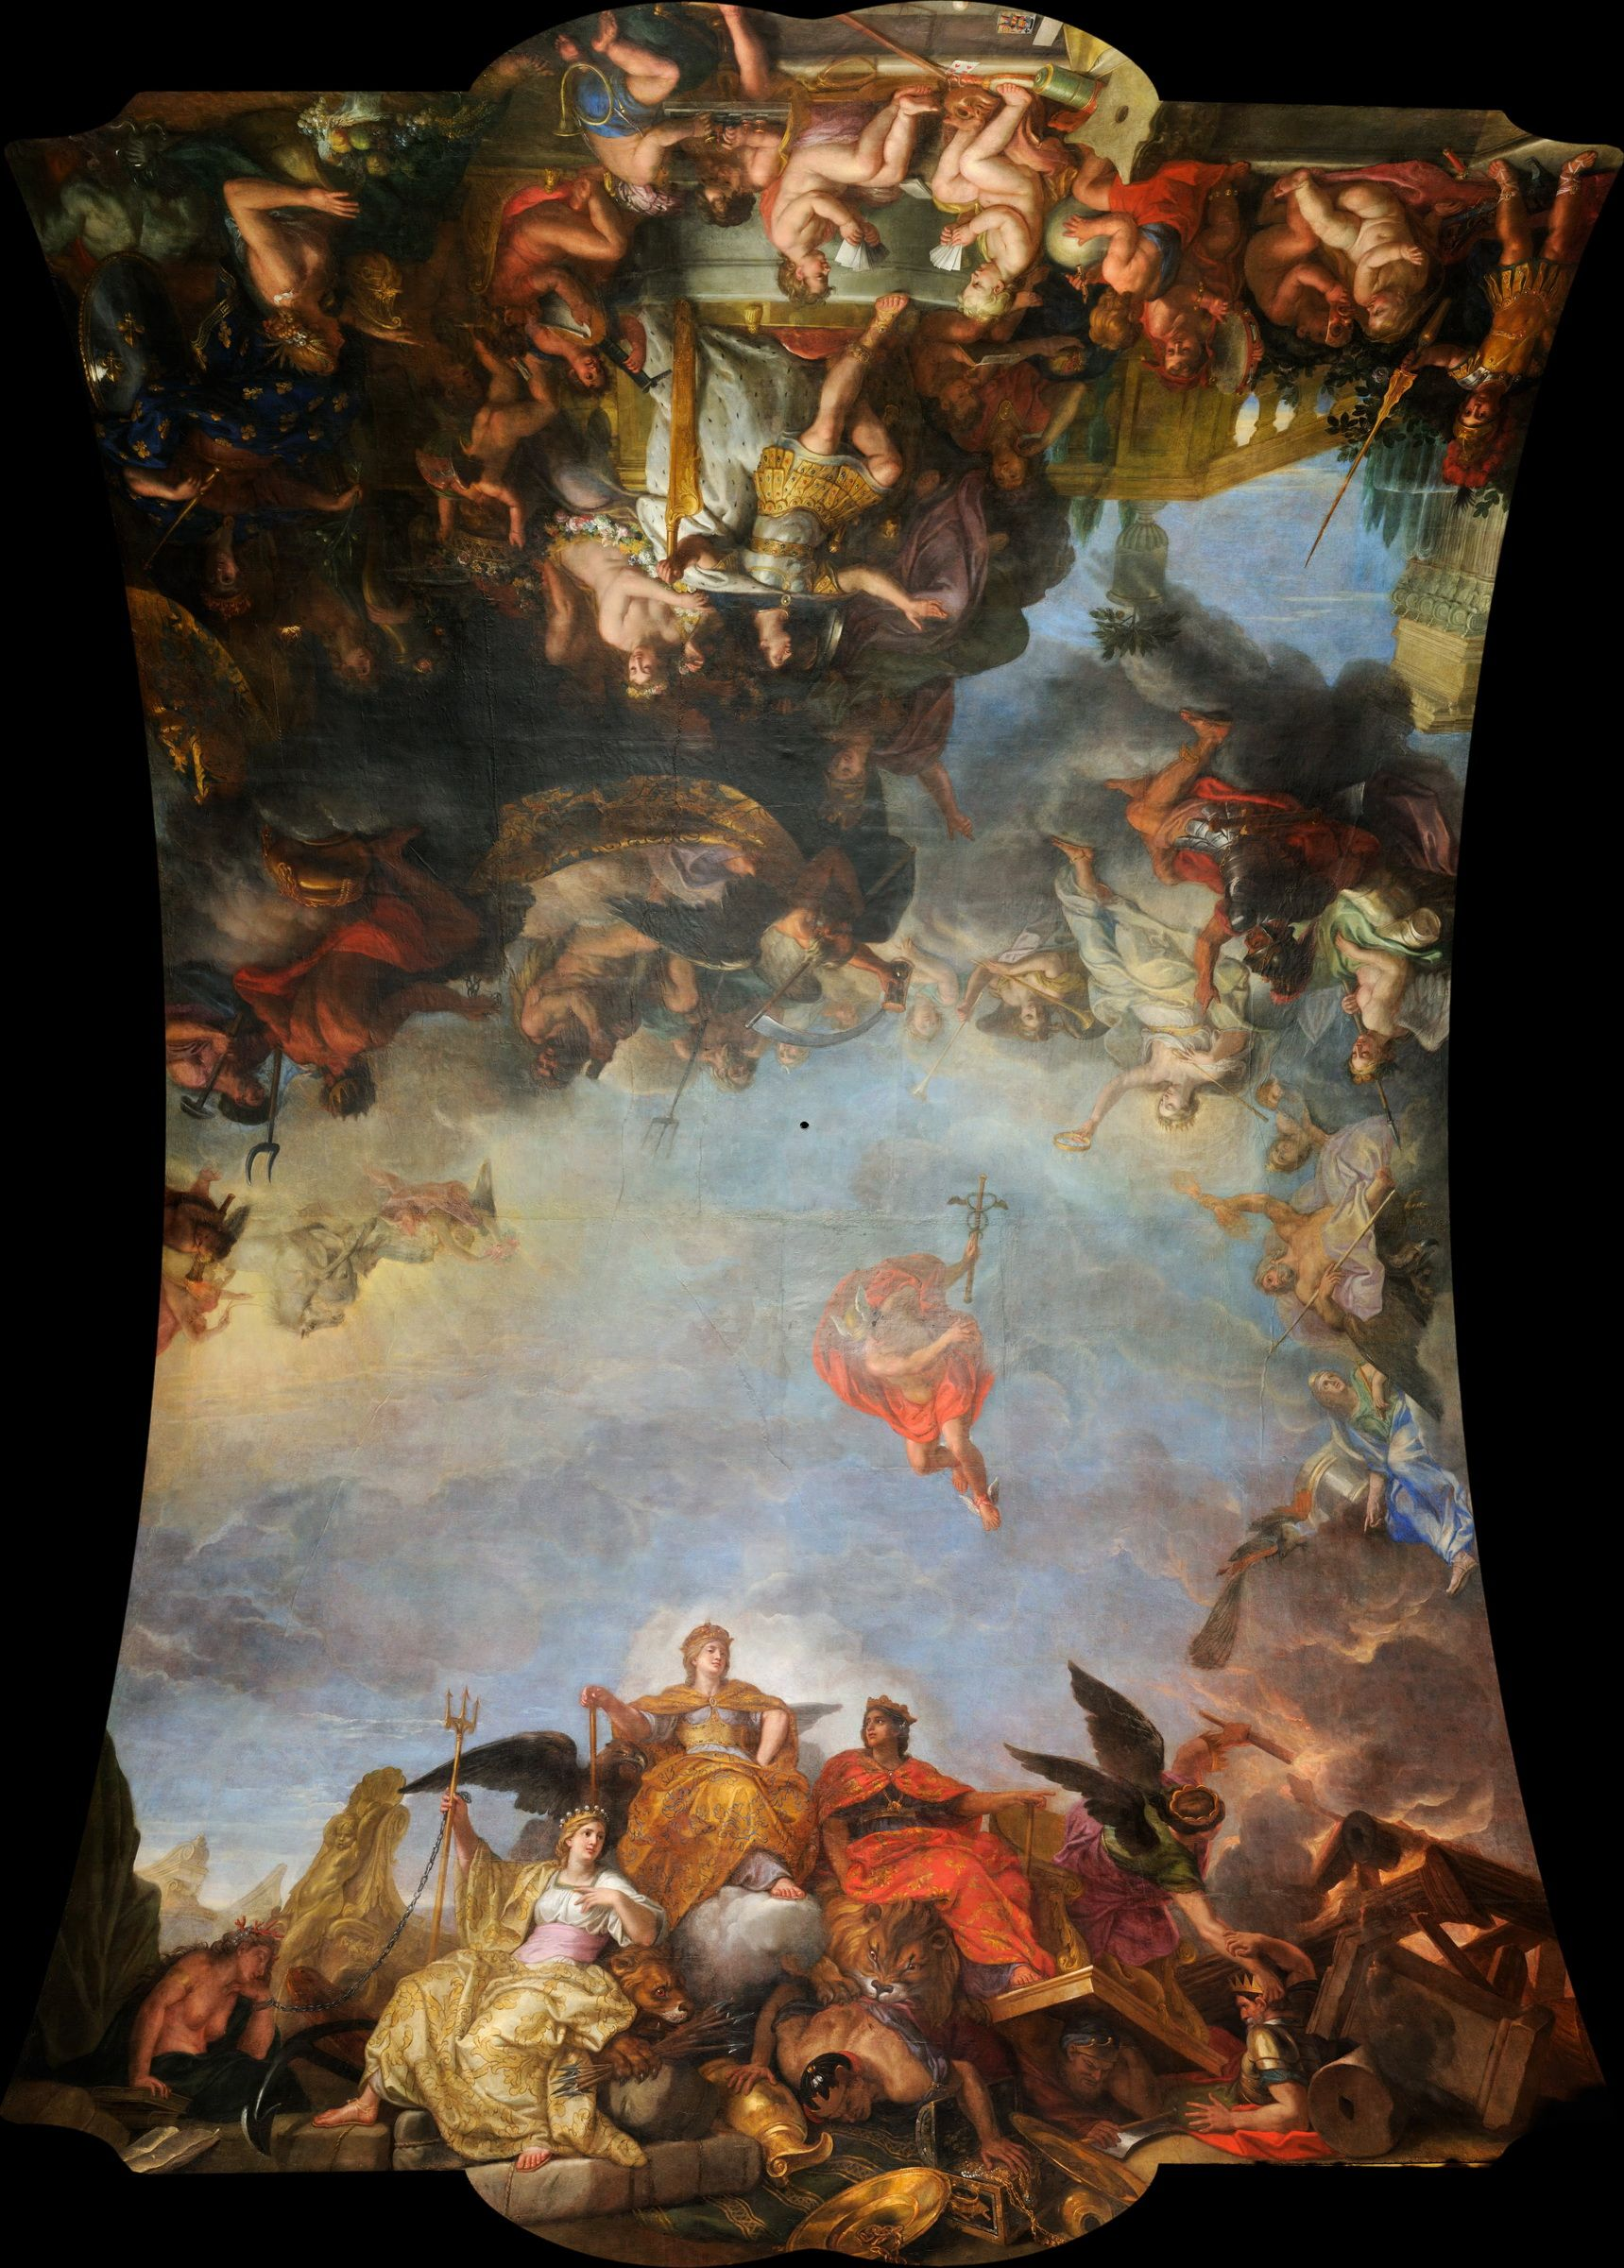 Charles le Brun, The King Governs Alone, 1679-1684, Hall of Mirrors, Versaille